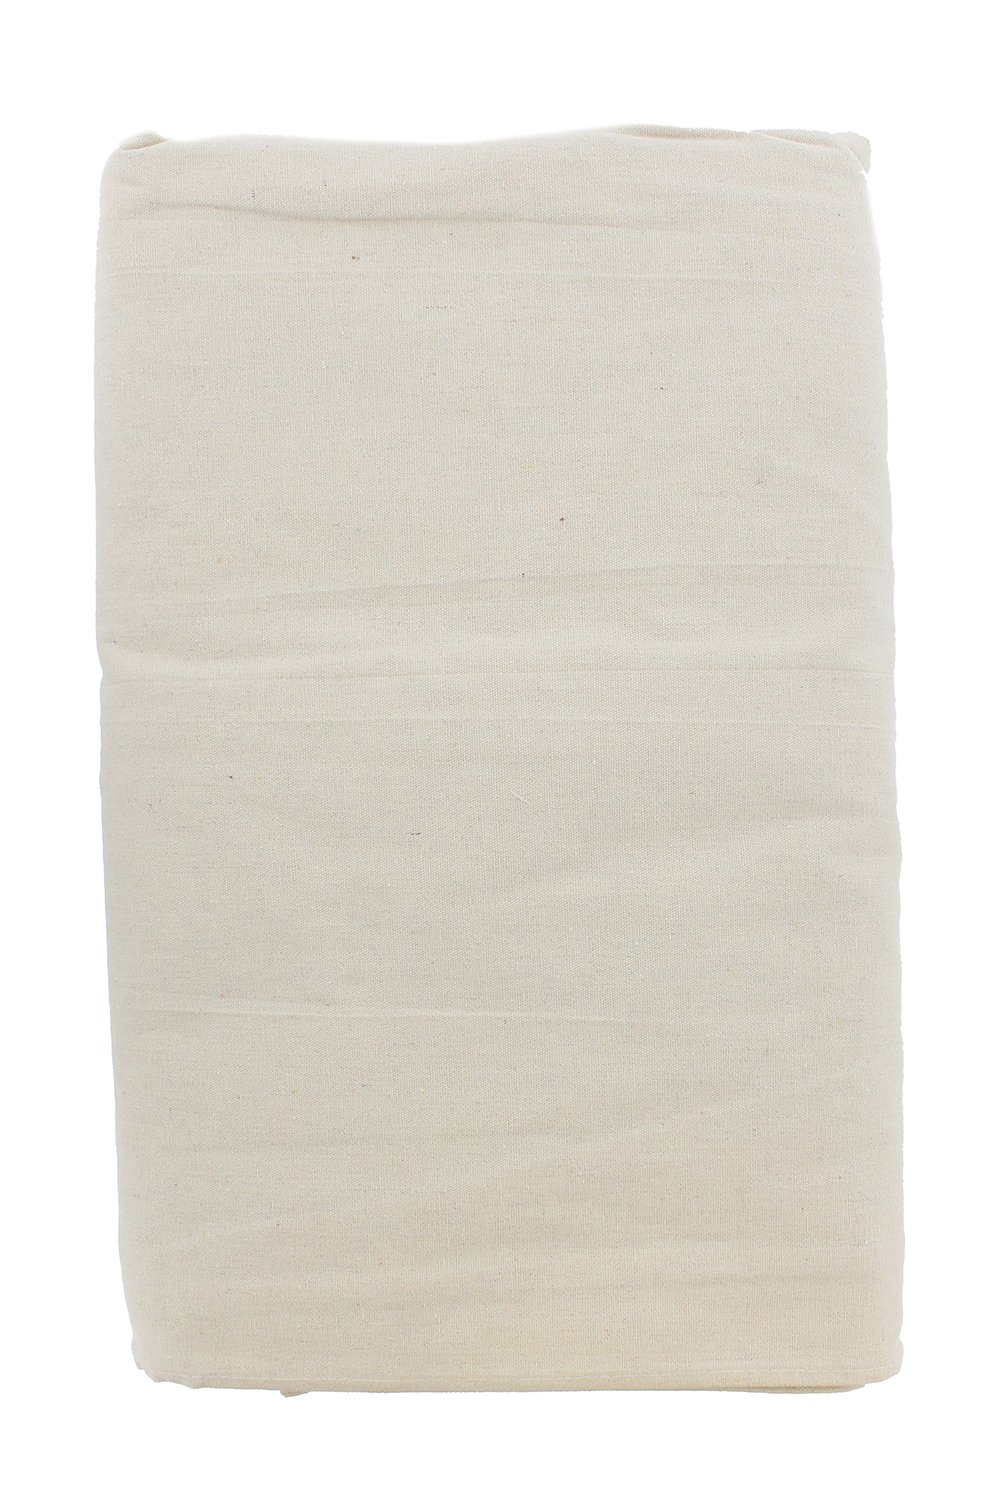 ABN Painters Cotton Canvas Paint Drop Cloth Auto Furniture XL 9/' x 12/' Foot 6-PACK Protective White Tarp for Painting